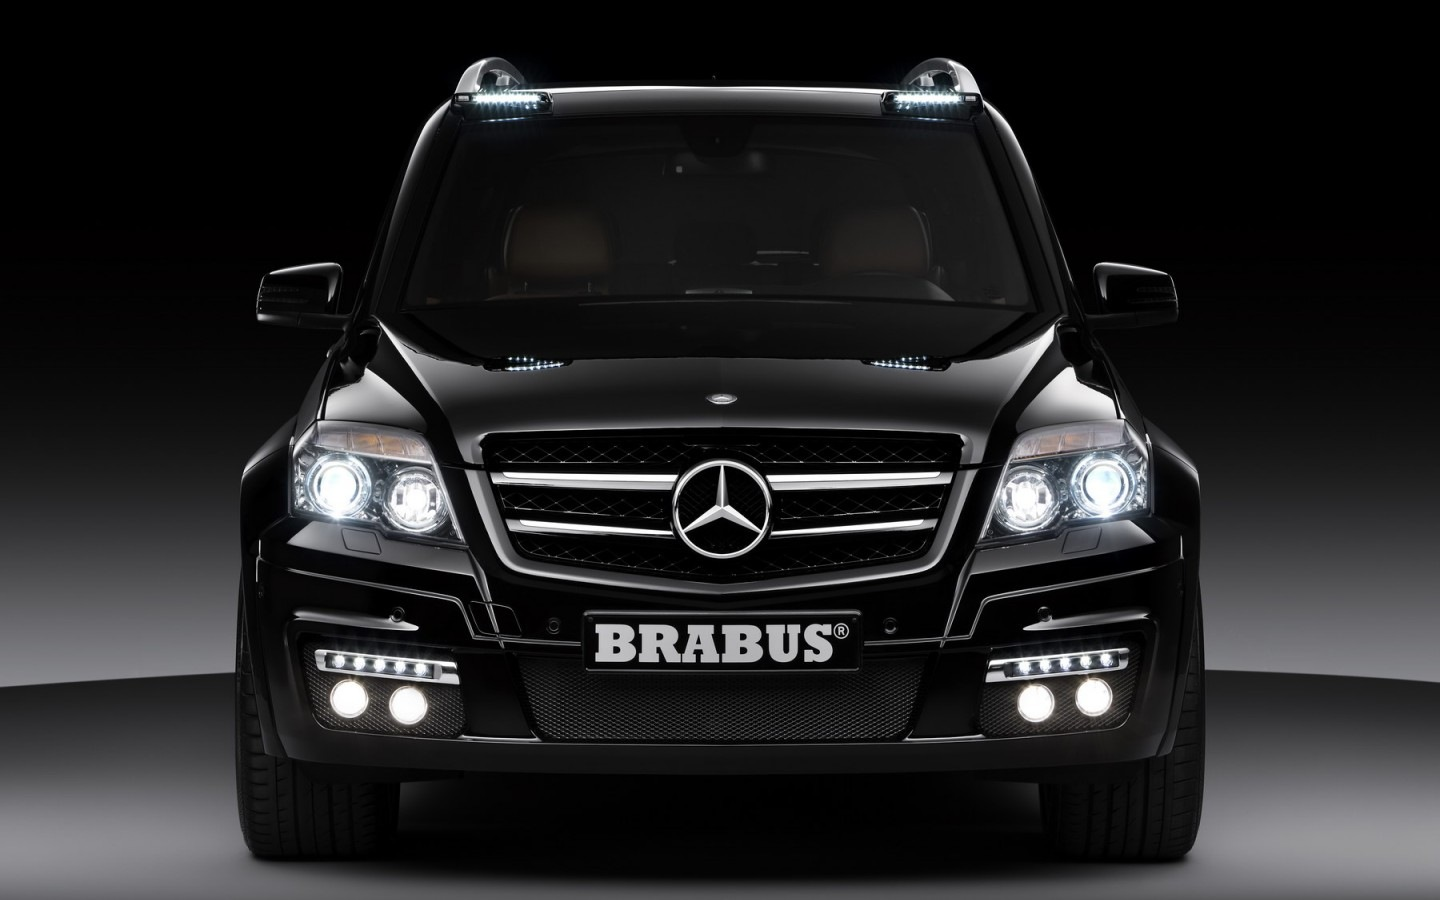 glk widestar brabus mercedes benz glk class. Black Bedroom Furniture Sets. Home Design Ideas